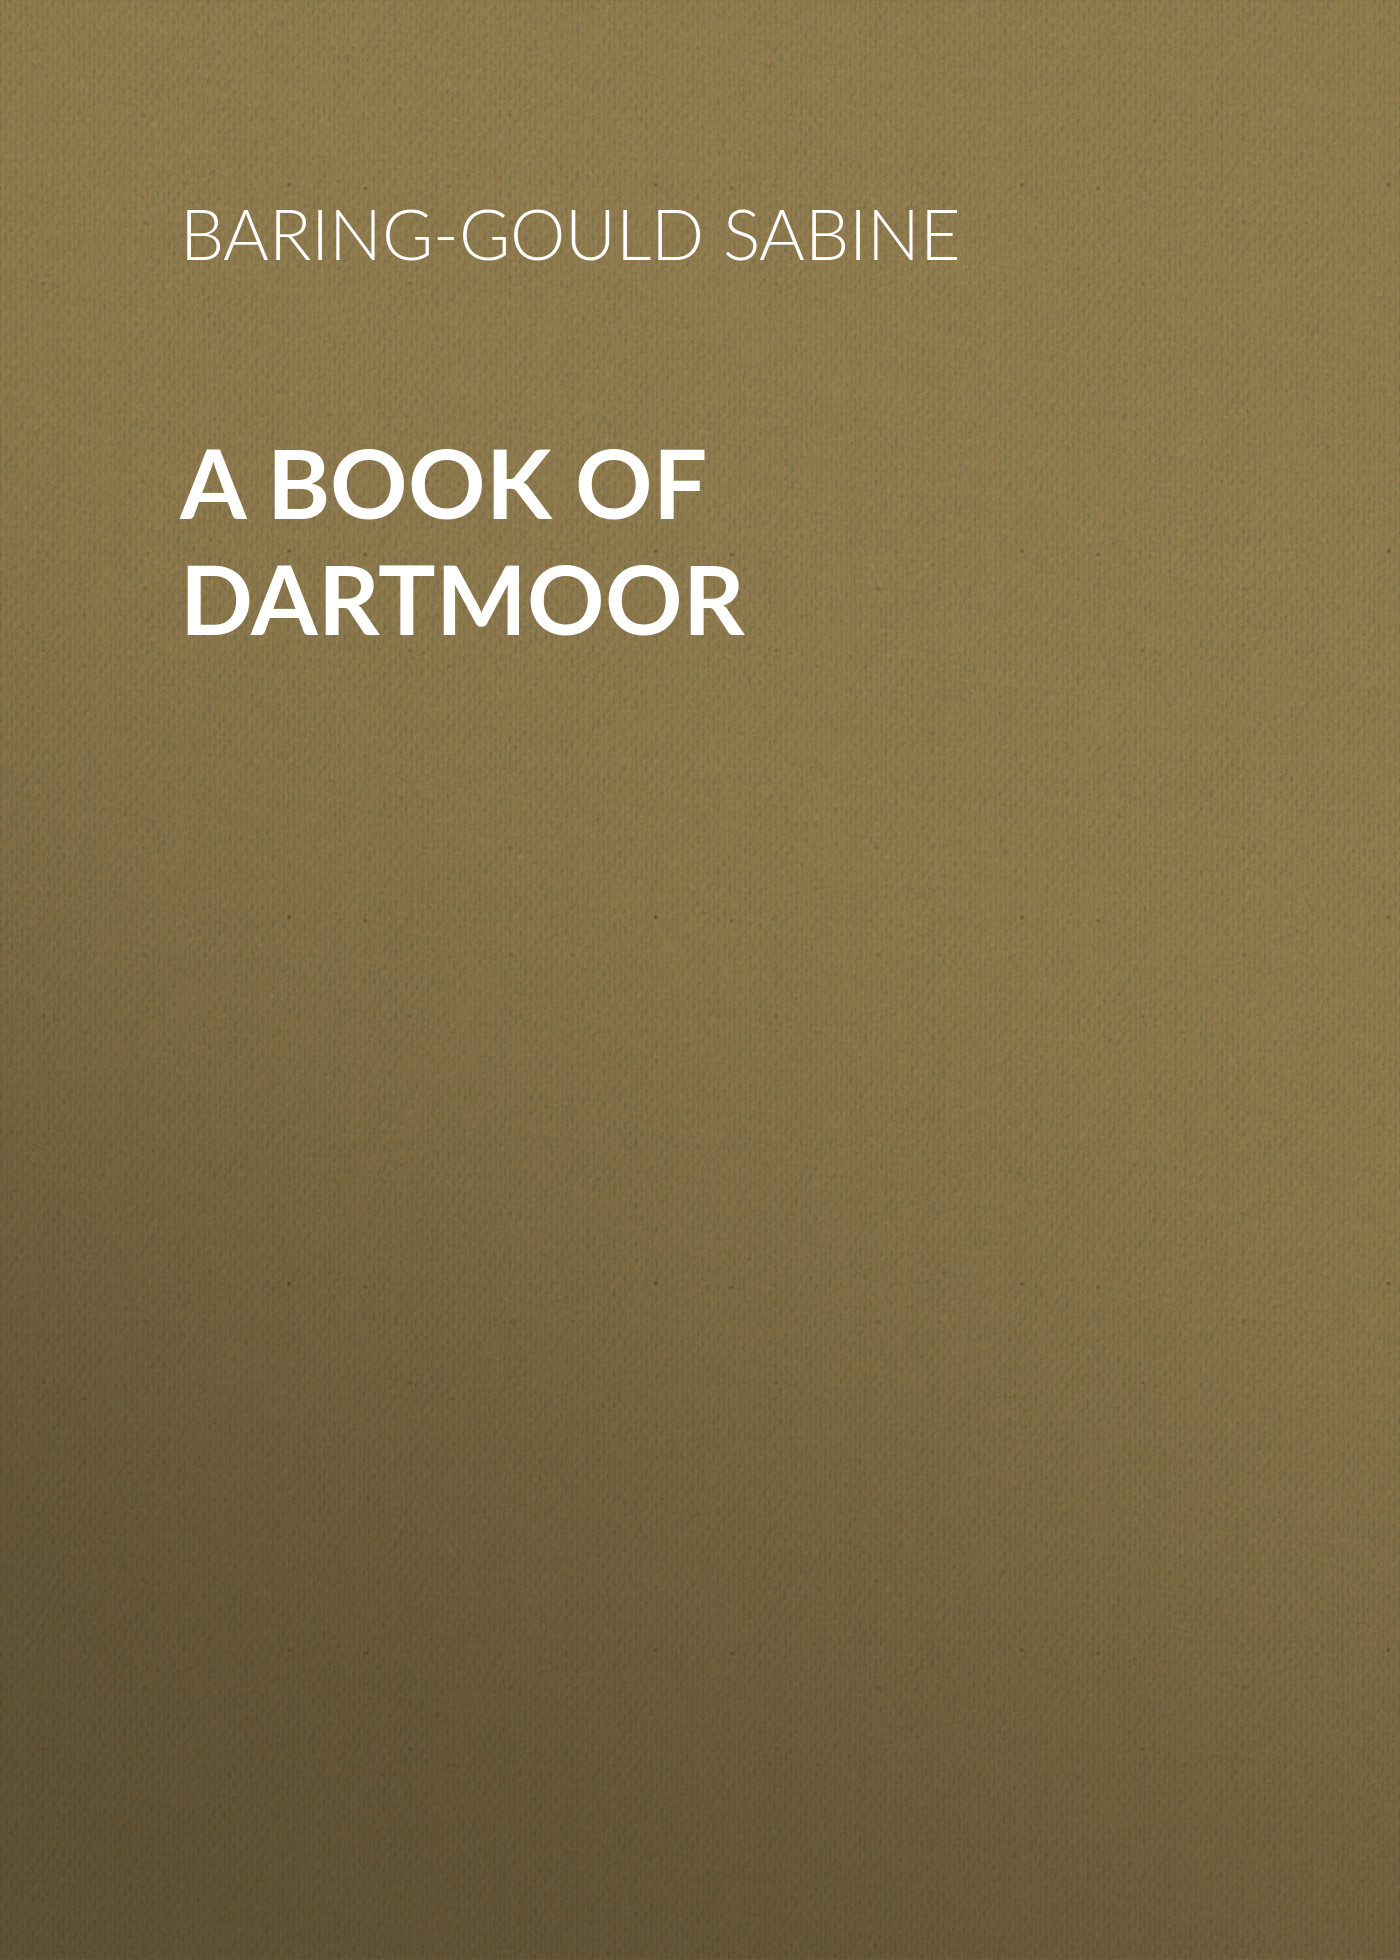 Baring-Gould Sabine A Book of Dartmoor baring gould sabine a book of north wales